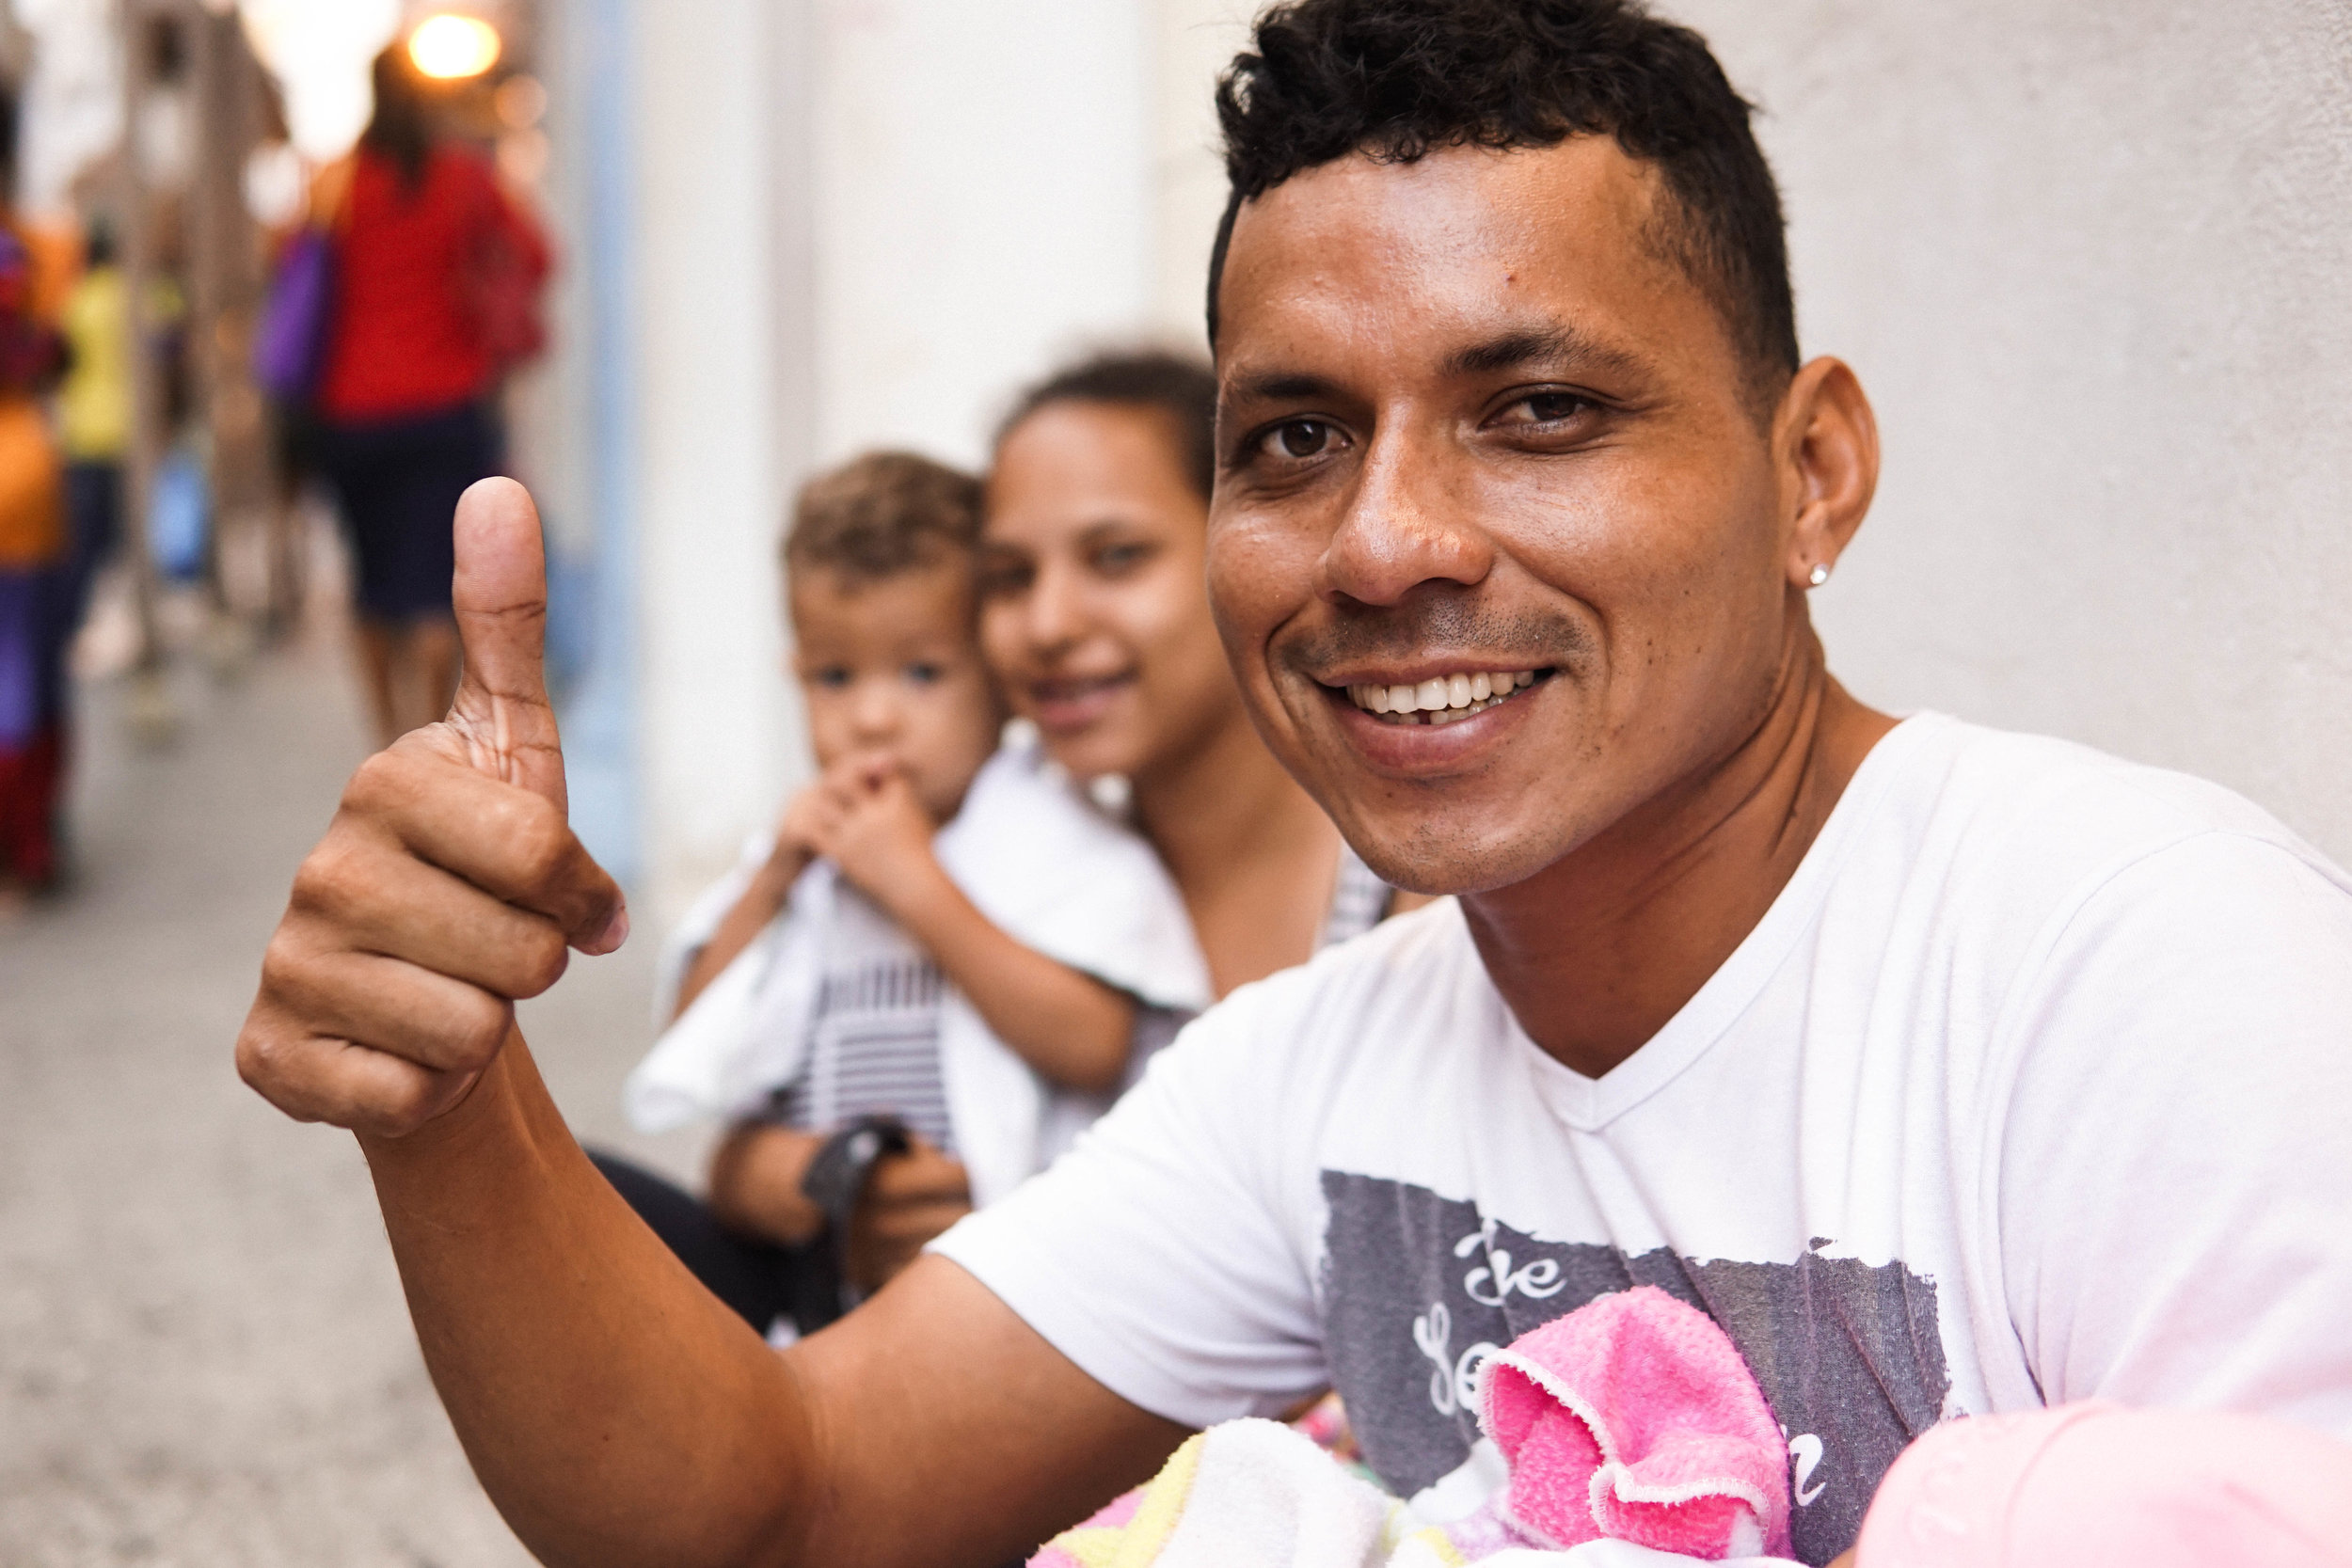 Crisis in Venezuala - Please keep immigrants from Venezuala, like pictured here in your thoughts and prayers. Their families are all over the streets of Colombia. They hope to build a new life here as Colombian immigration welcomes their arrival.